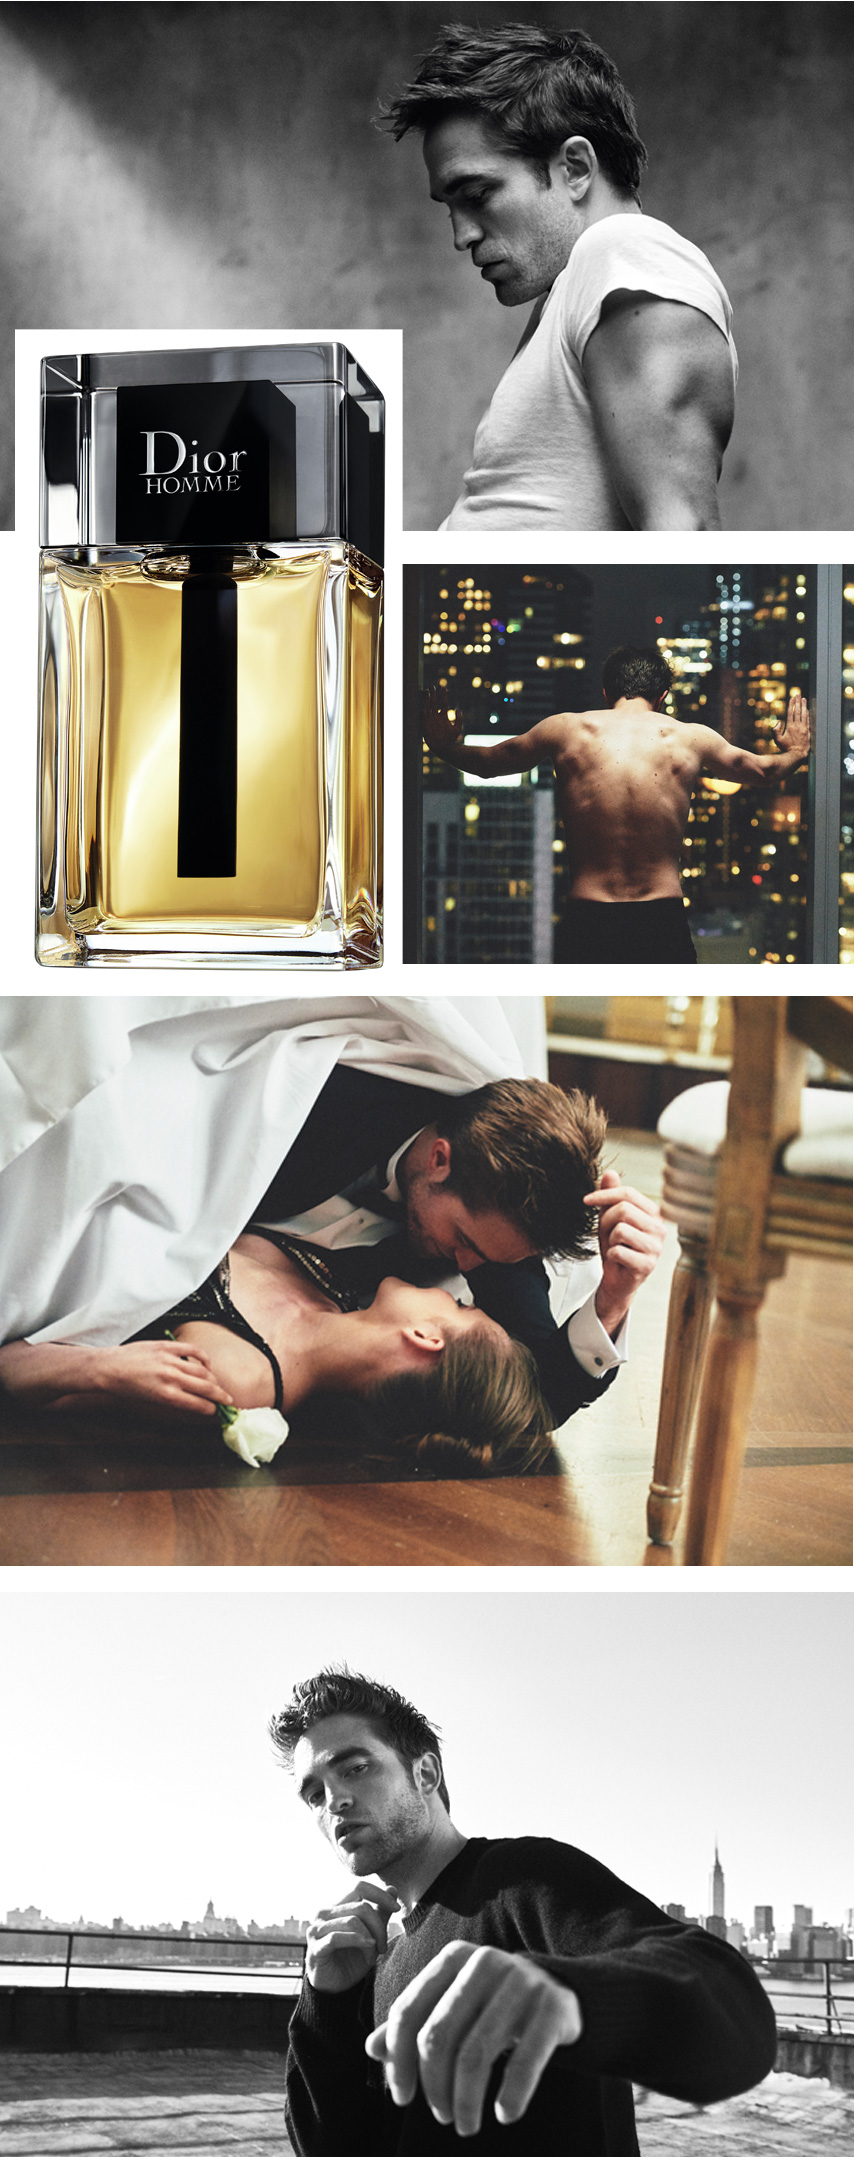 Dior Homme, Dior Parfums, Robert Pattinson, Men Fragrance, Groom, Groom Style, Men Style, Men Fragrances, Dior,